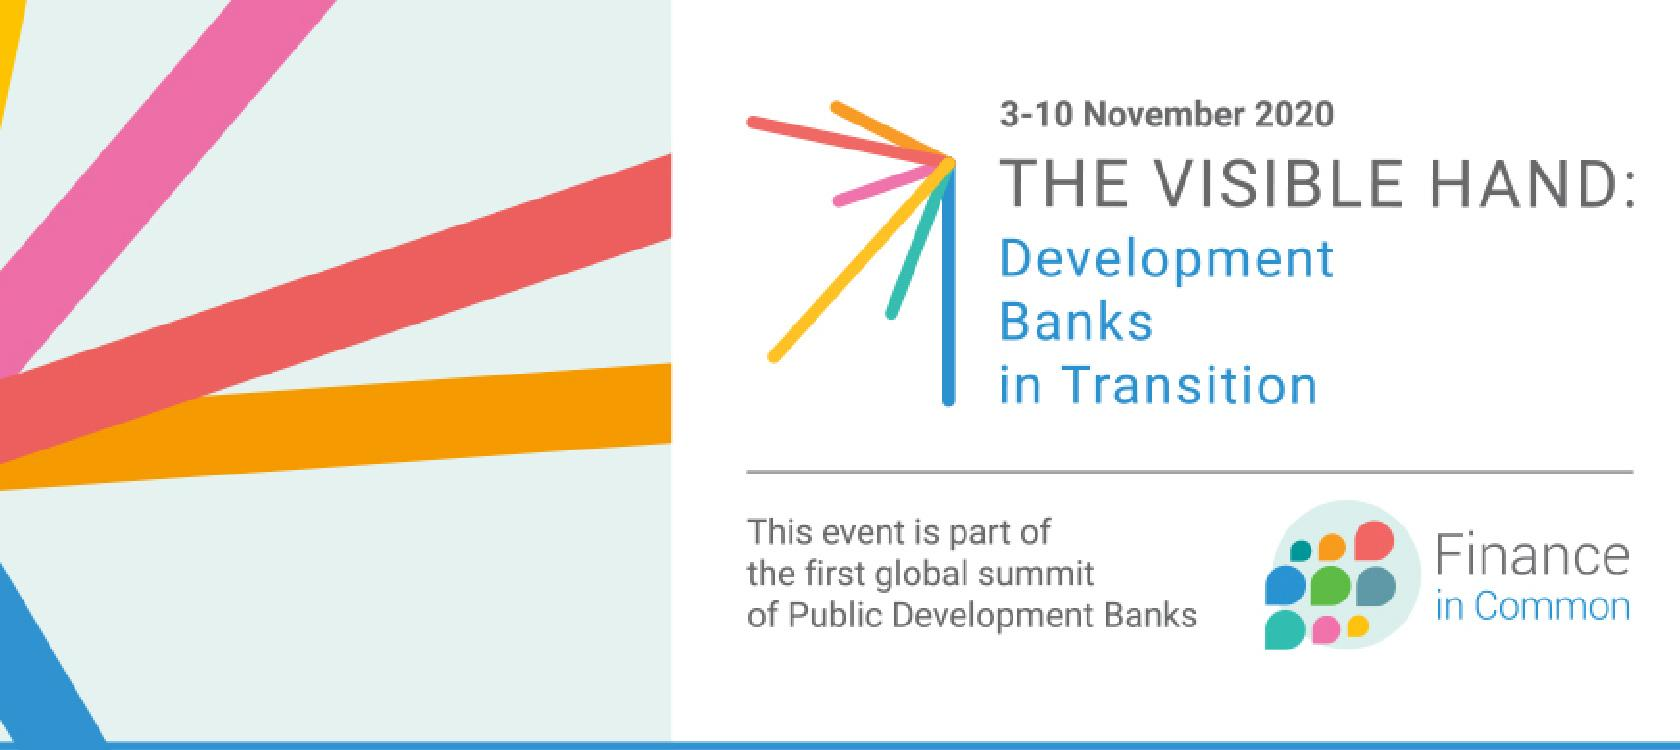 The Visible Hand: Development banks in Transition